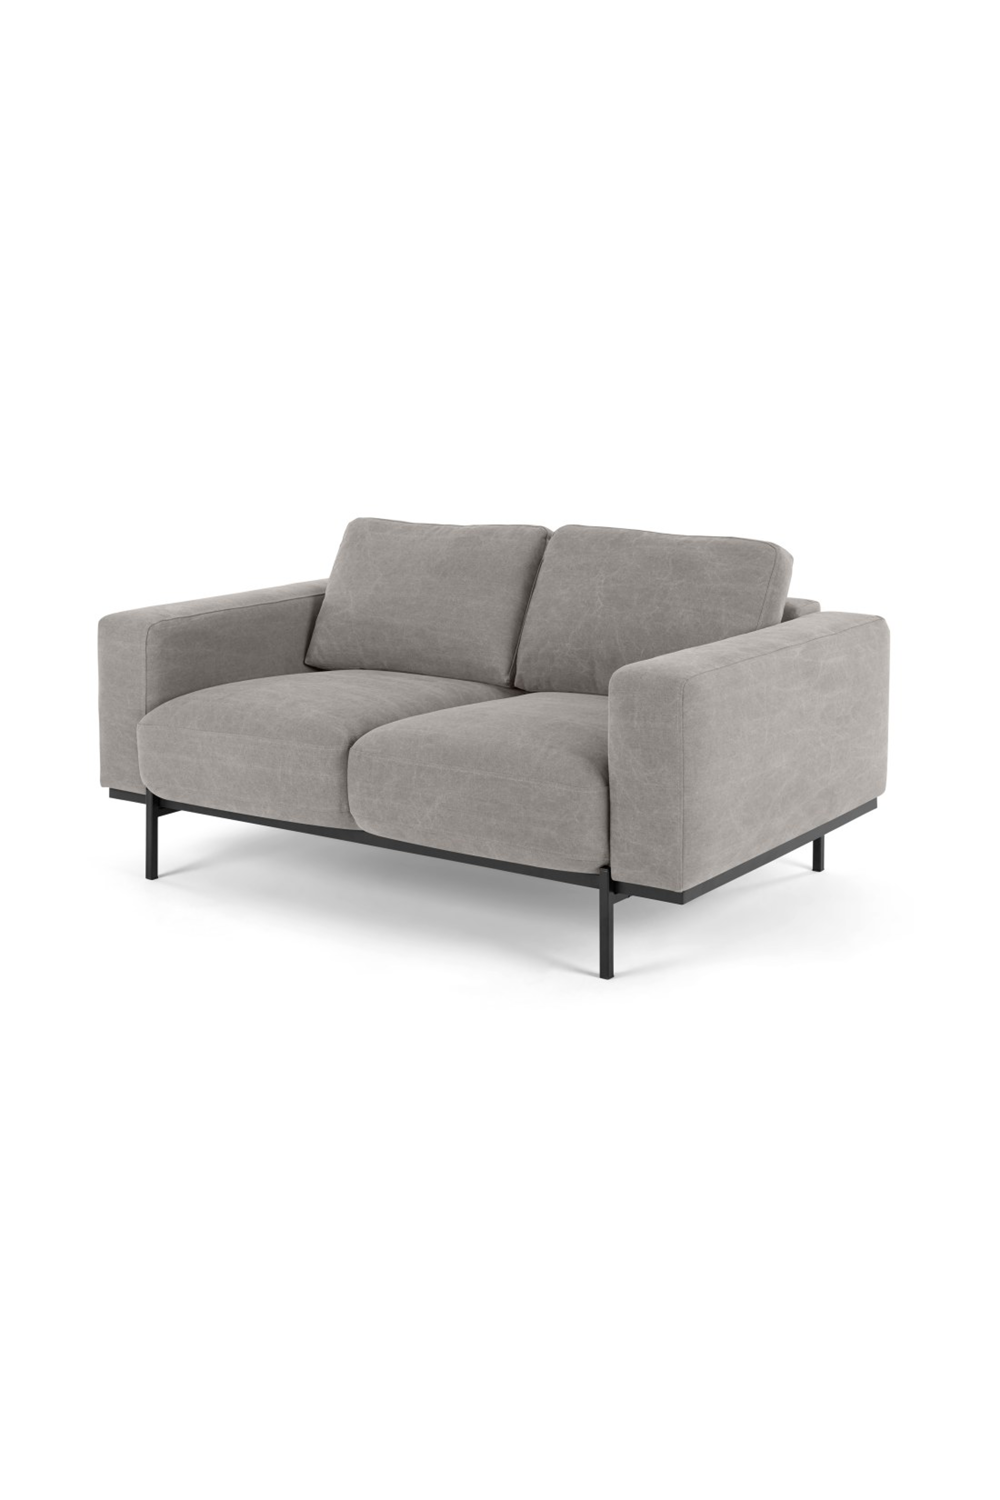 Jarrod 2 Sitzer Sofa Grau Sofa Furniture Home Decor